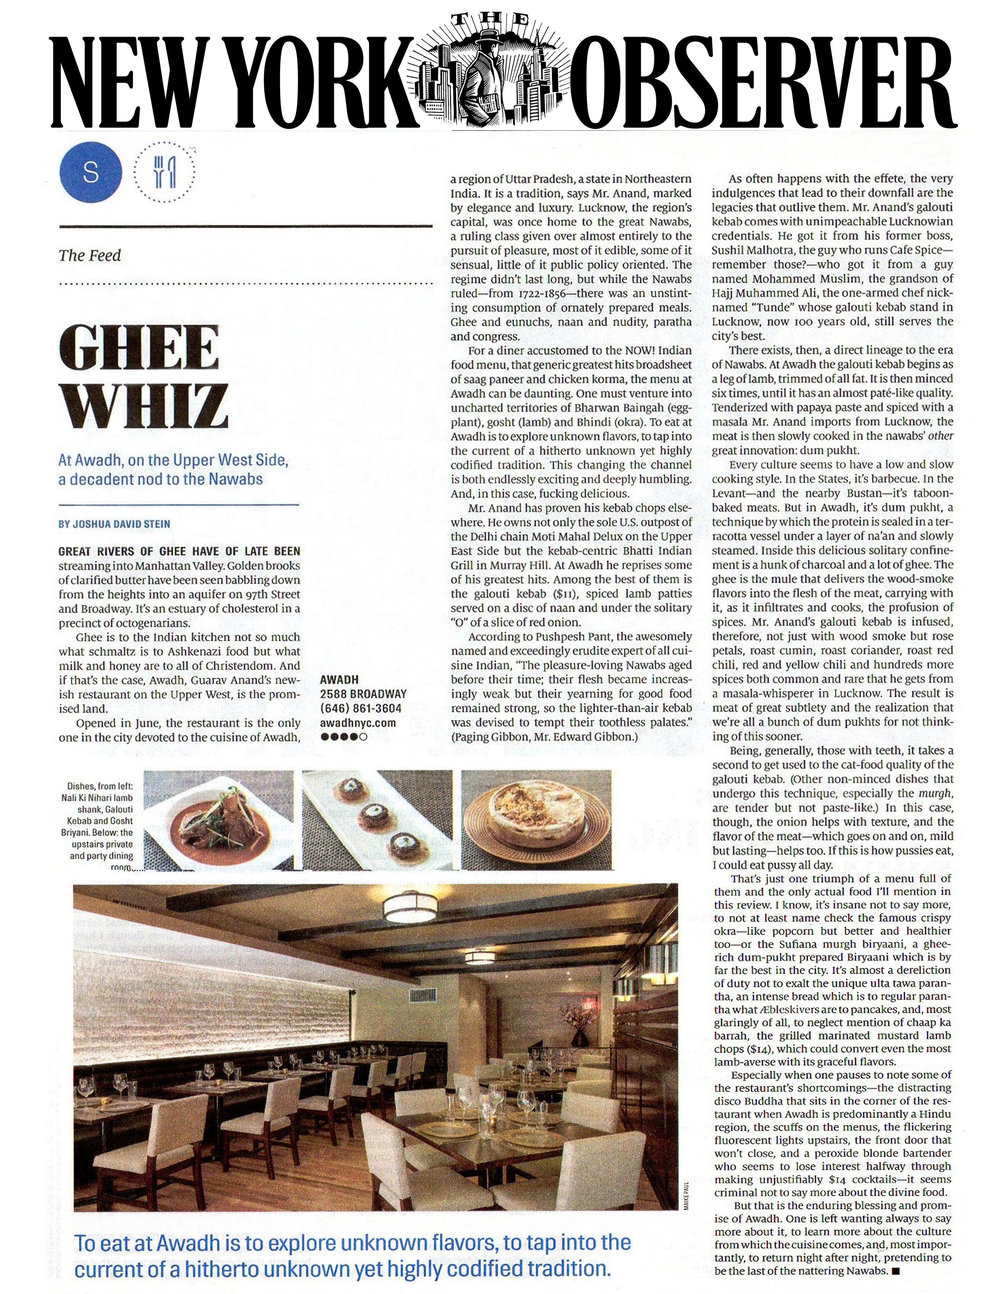 Opened in June, the restaurant is the only one in the city devoted to the cuisine of Awadh, a region of Uttar Pradesh, a state in Northeastern India. It is a tradition, says Mr. Anand, marked by elegance and luxury. -